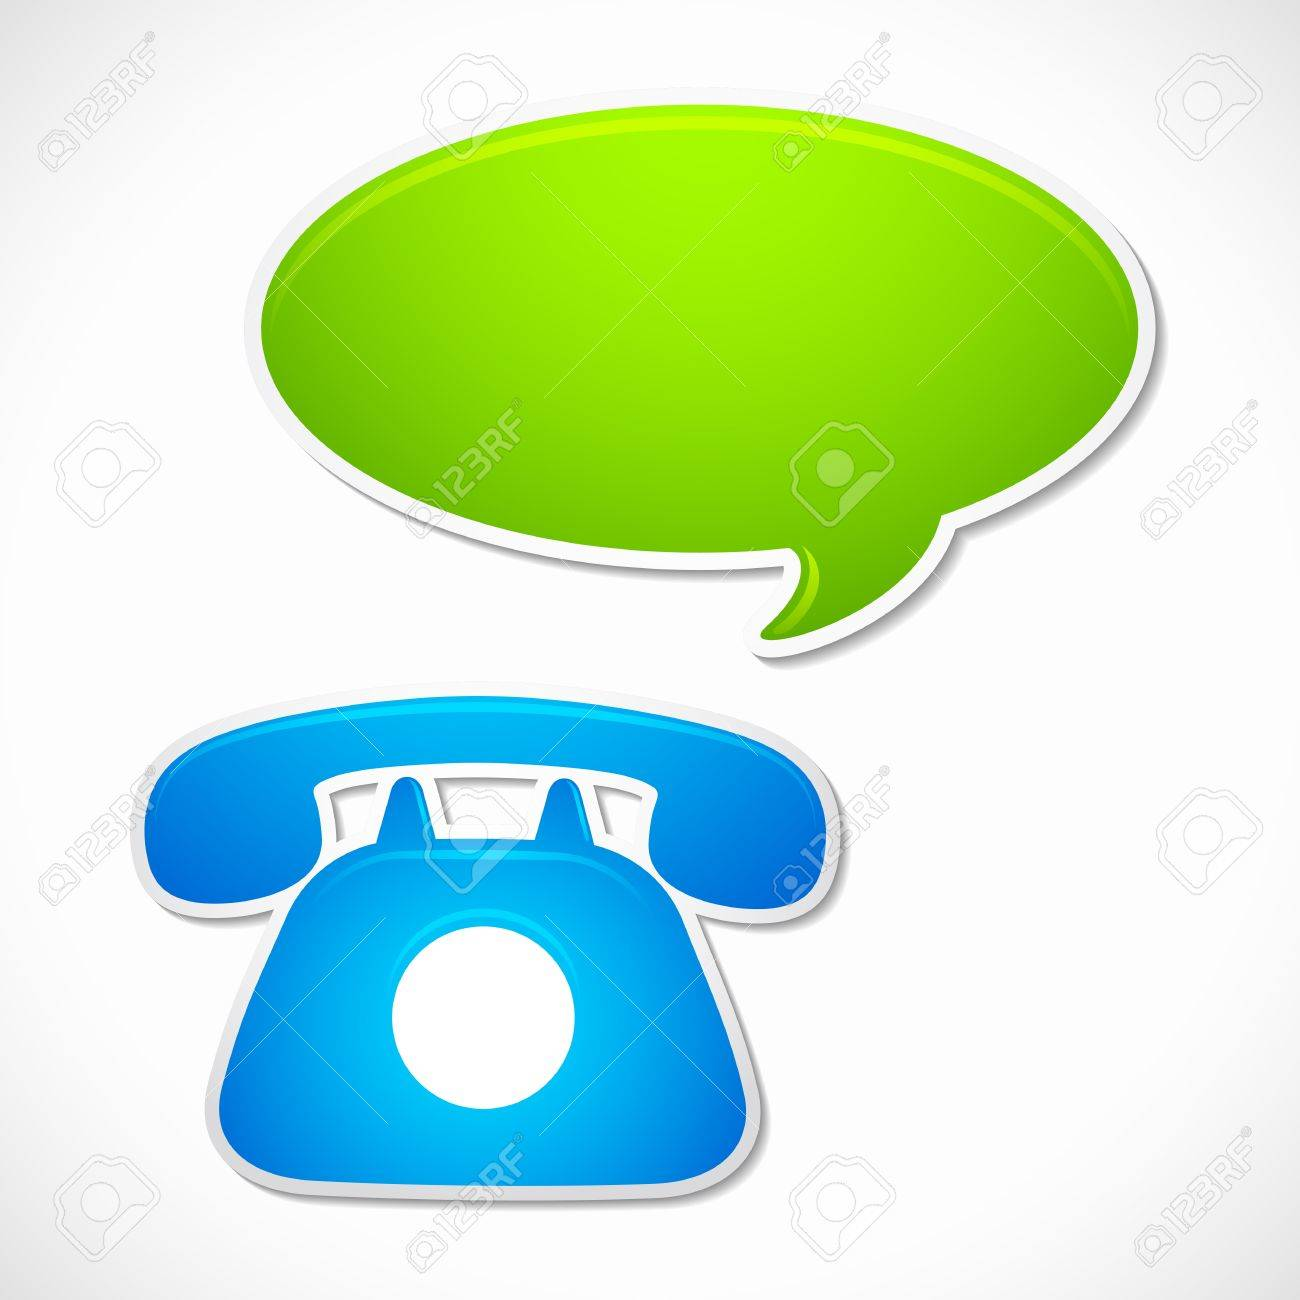 Old Rotary Phone with Chat Bubble Stock Vector - 12997480